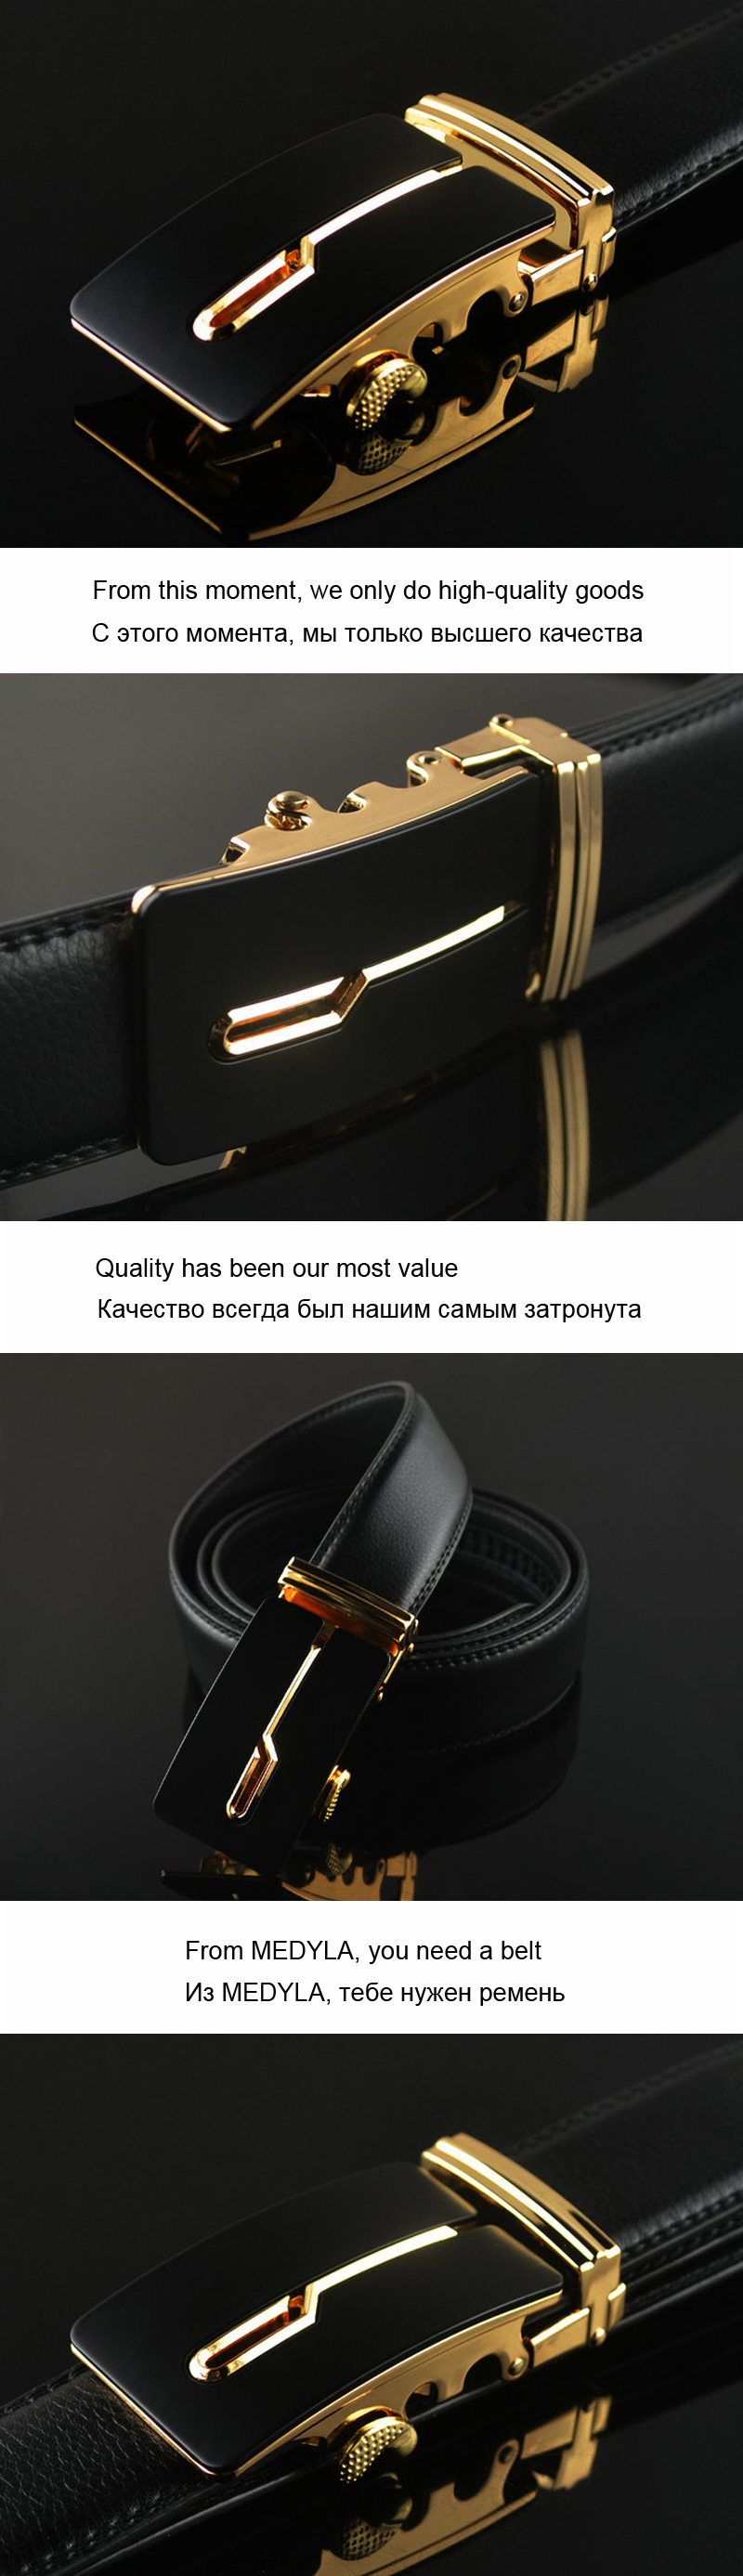 HTB1r3dLfS I8KJjy0Foq6yFnVXaU - Famous Brand Belt Men 100% Good Quality Cowskin Genuine Luxury Leather Men's Belts for Men,Strap Male Metal Automatic Buckle